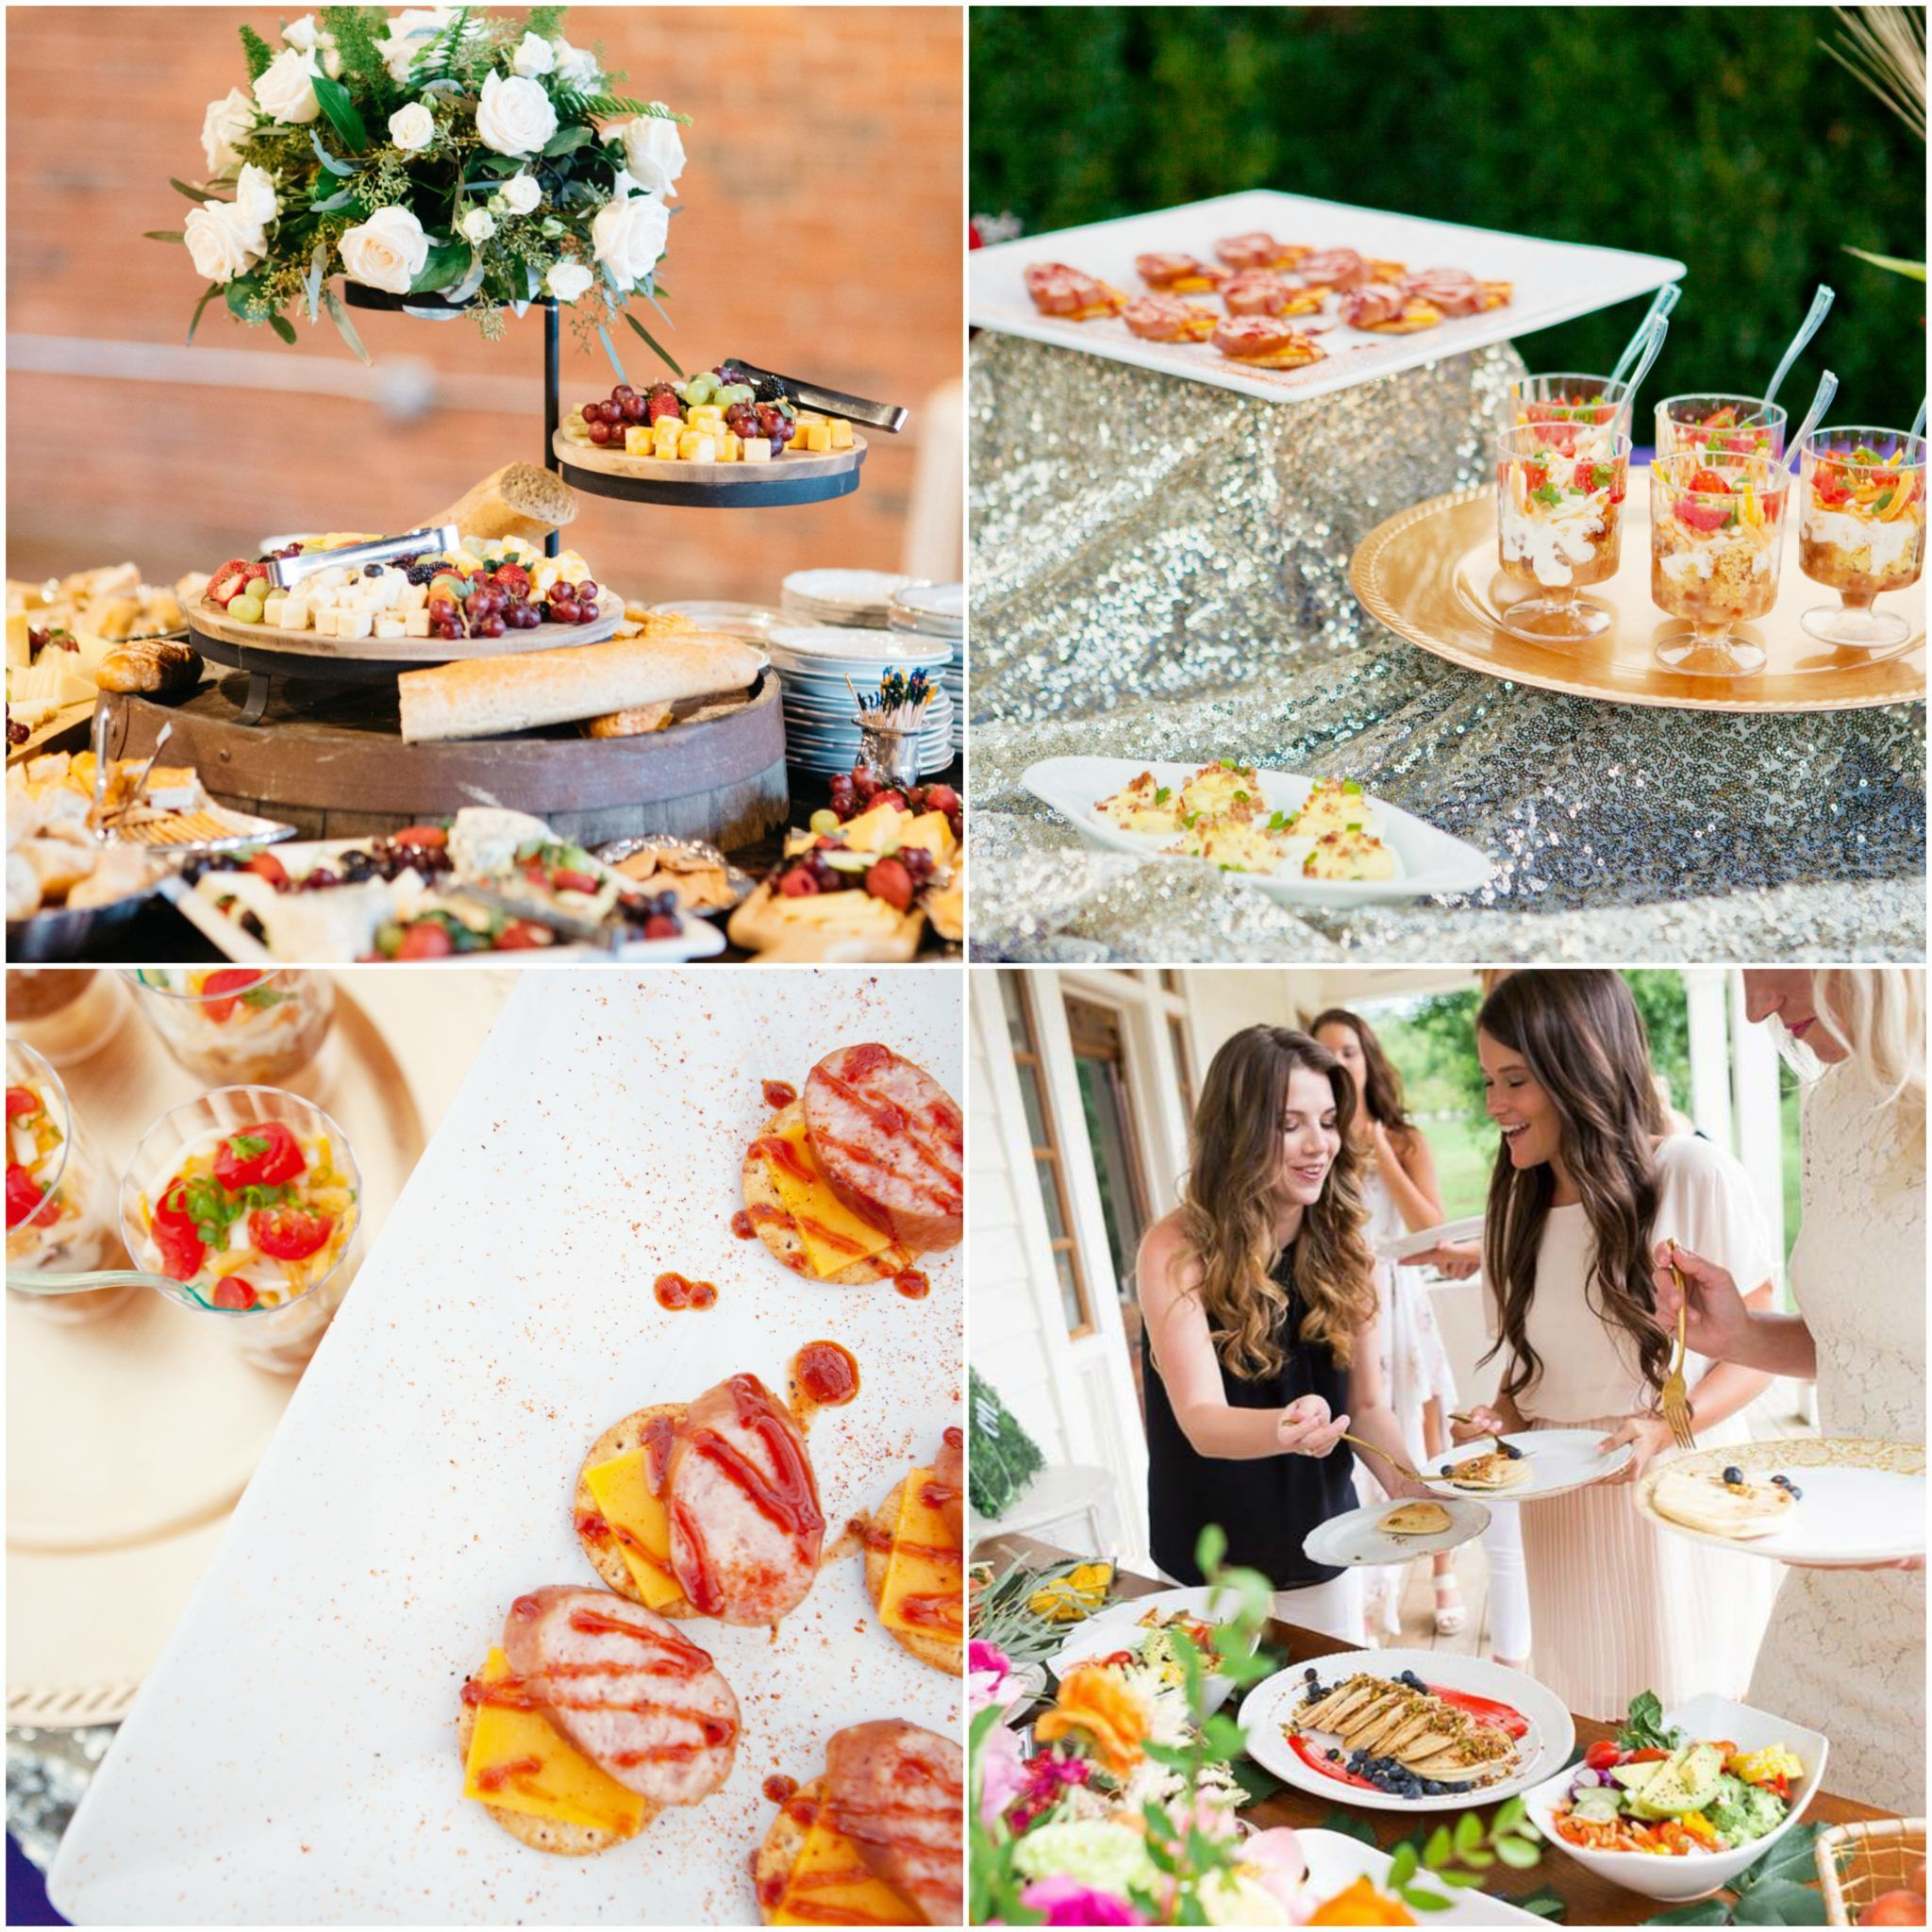 4 Types Of Catering Every Bride Should Know About (With